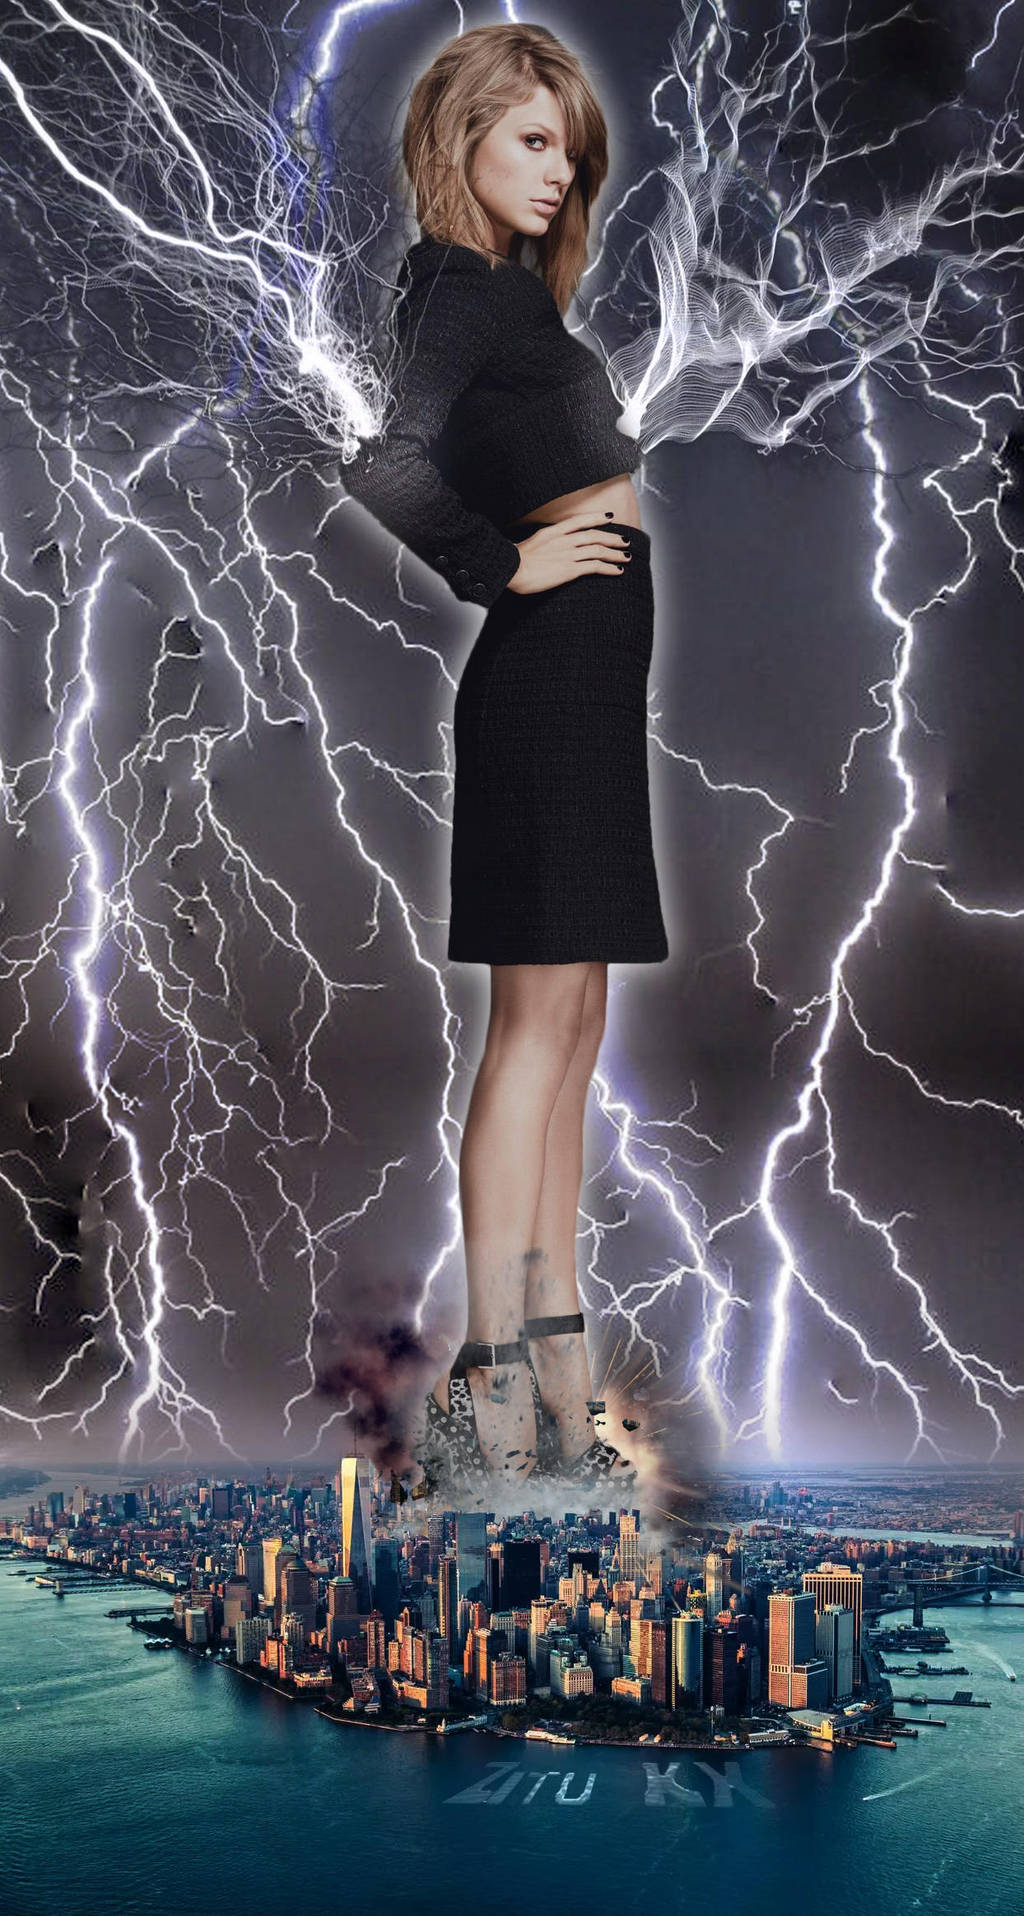 Taylor's Thunders - Absorption of energy by ZituKX